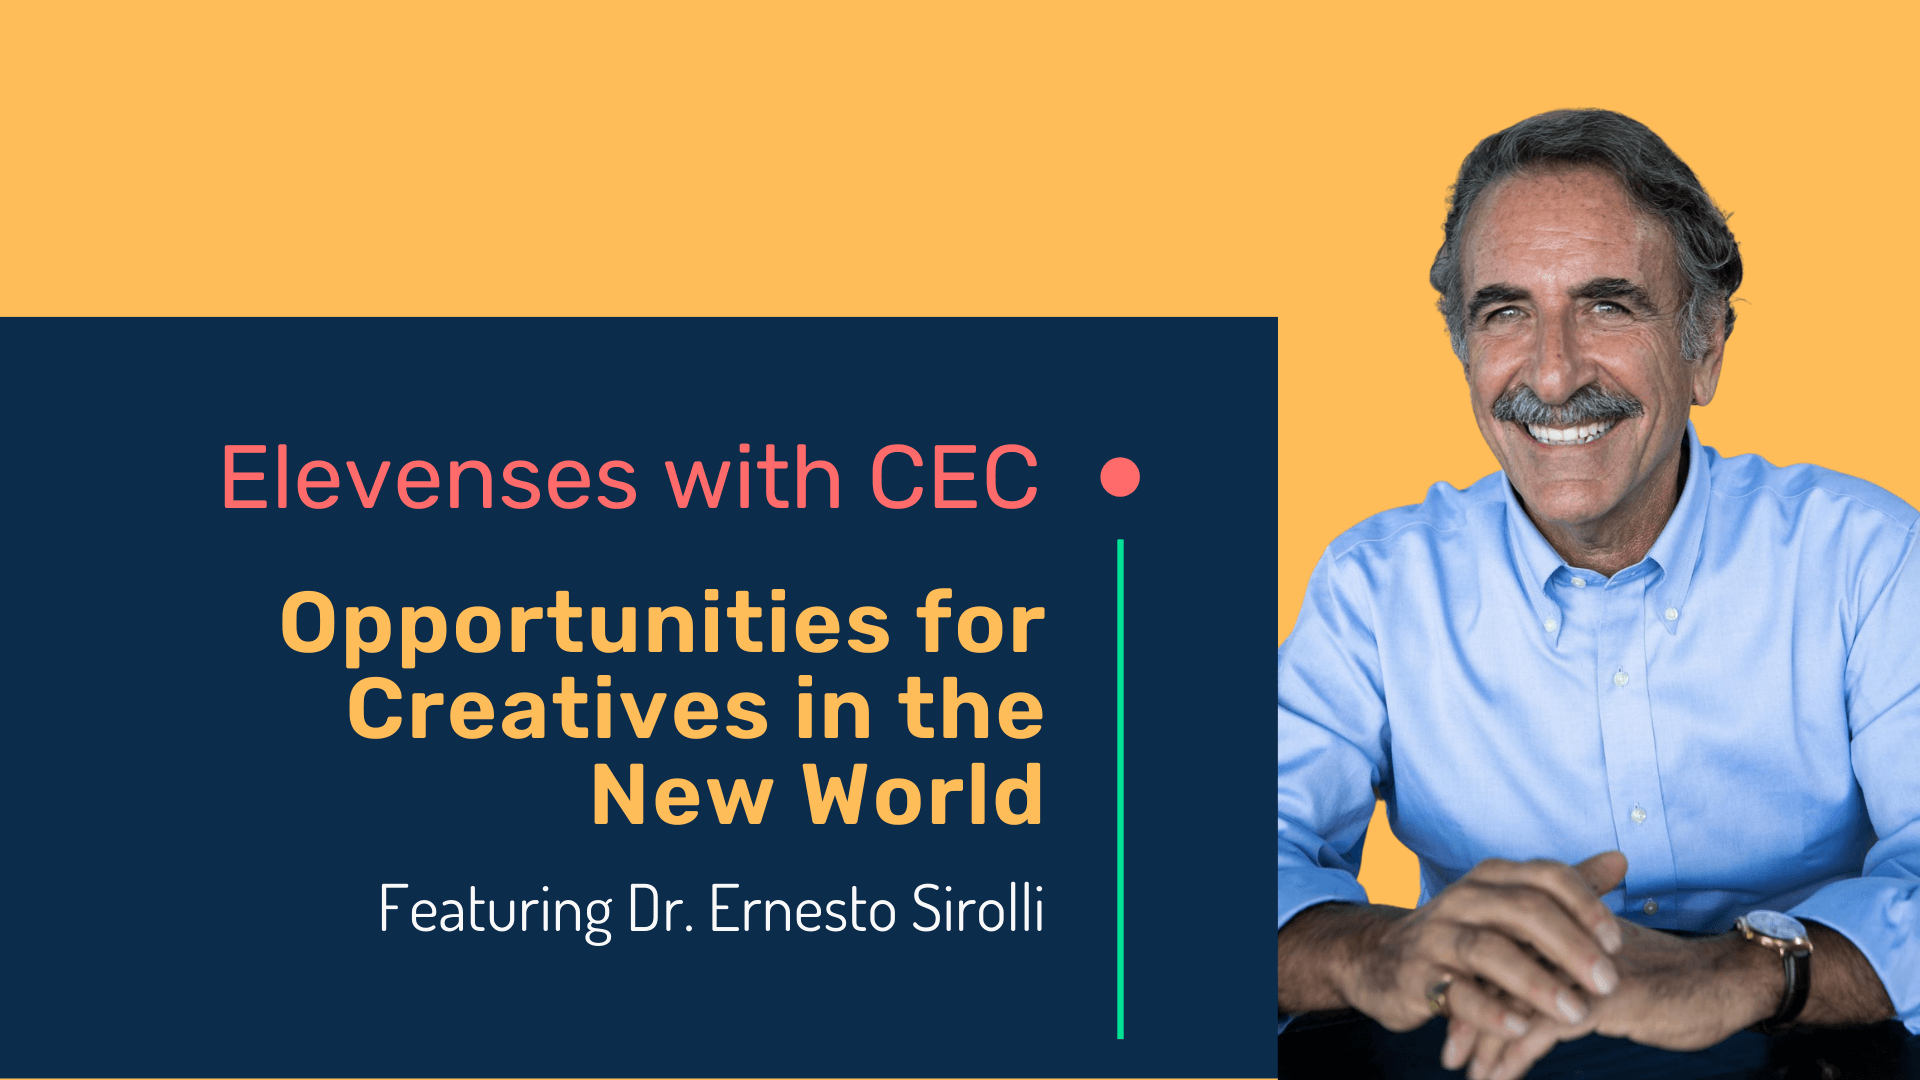 Opportunities for creatives in the new world with Dr. Ernesto Sirolli